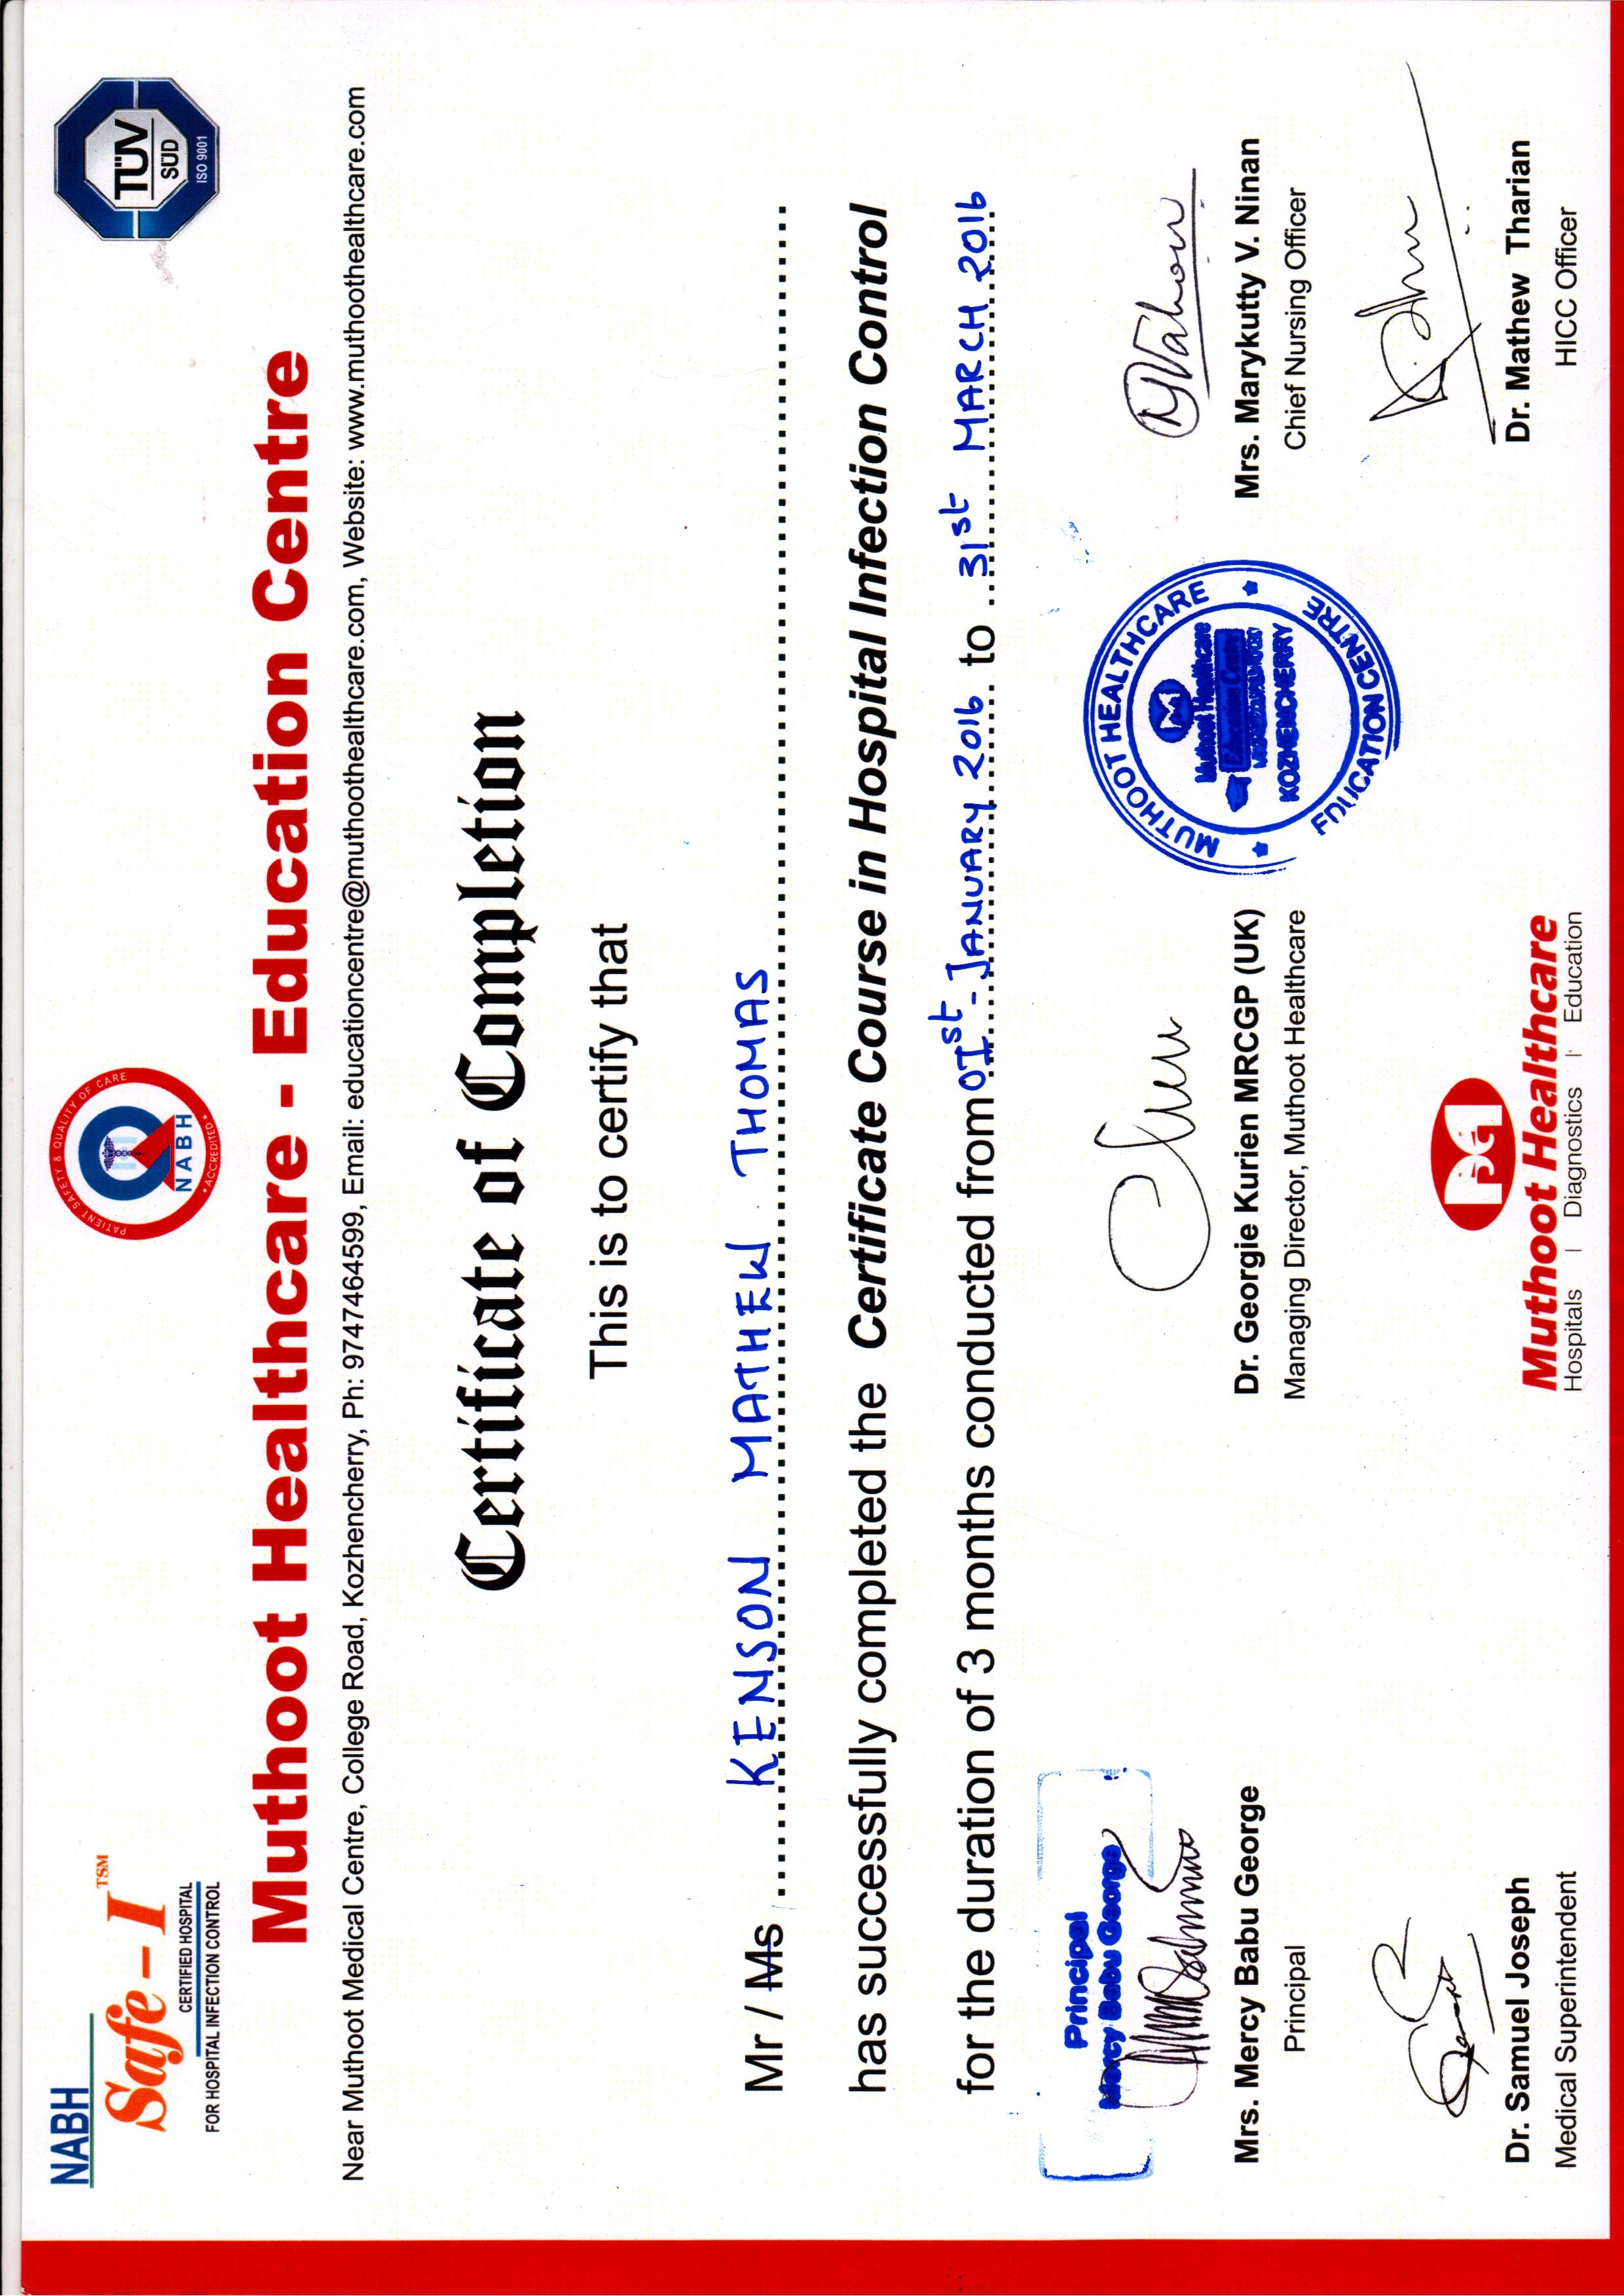 Kenson thomas bayt infection control nurse certificate 1betcityfo Image collections